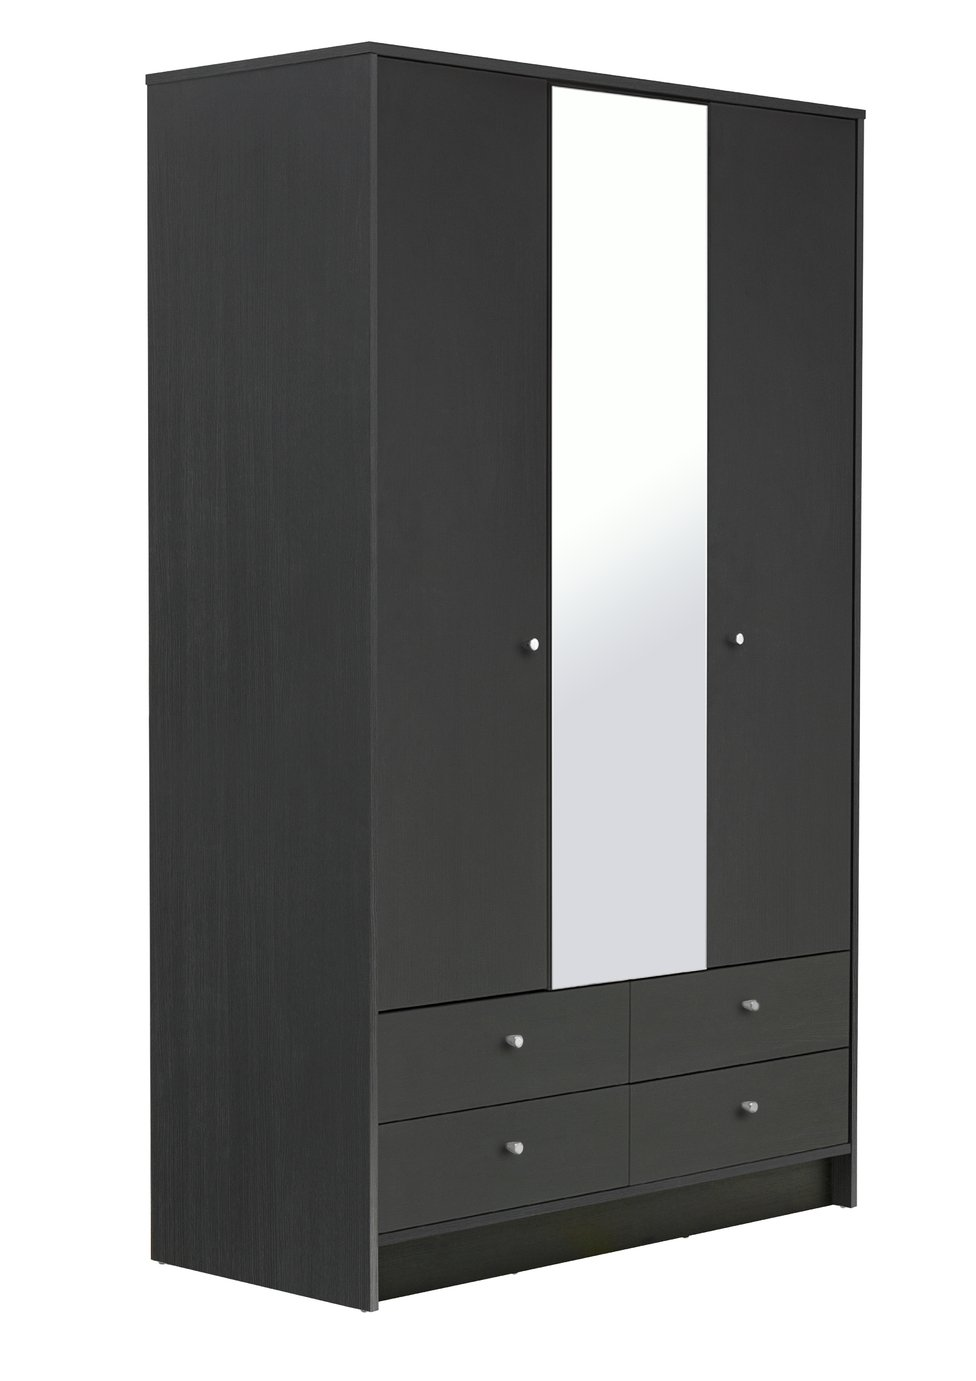 Argos Home Malibu 3 Door 4 Drawer Mirrored Wardrobe